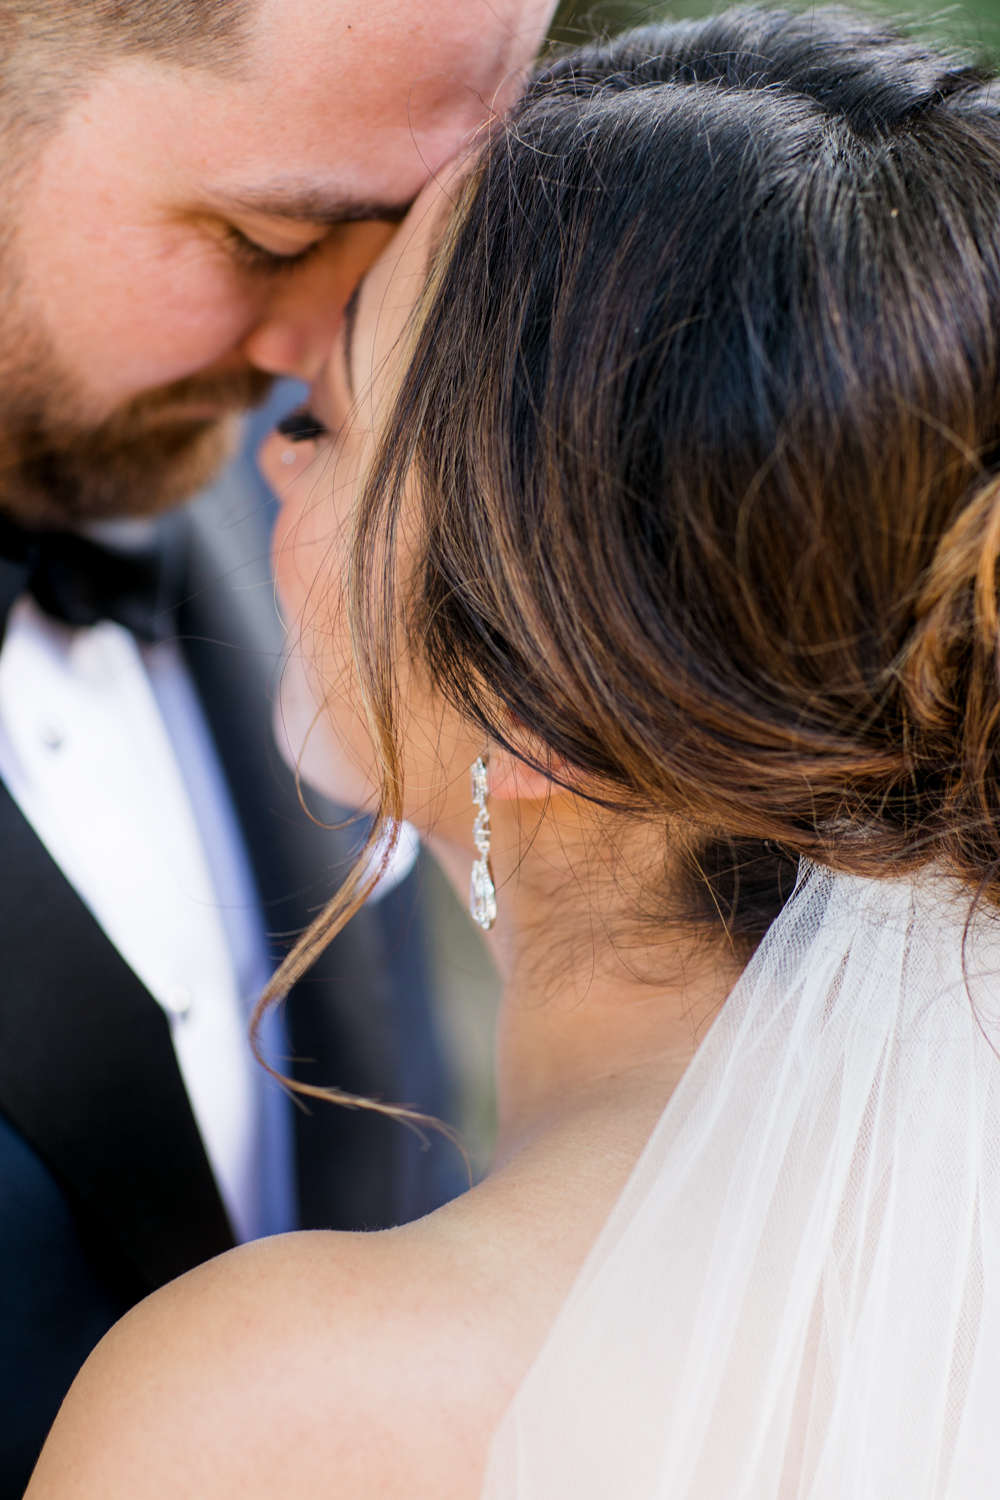 a close up of bride and groom close together with a focus on the bride's earring